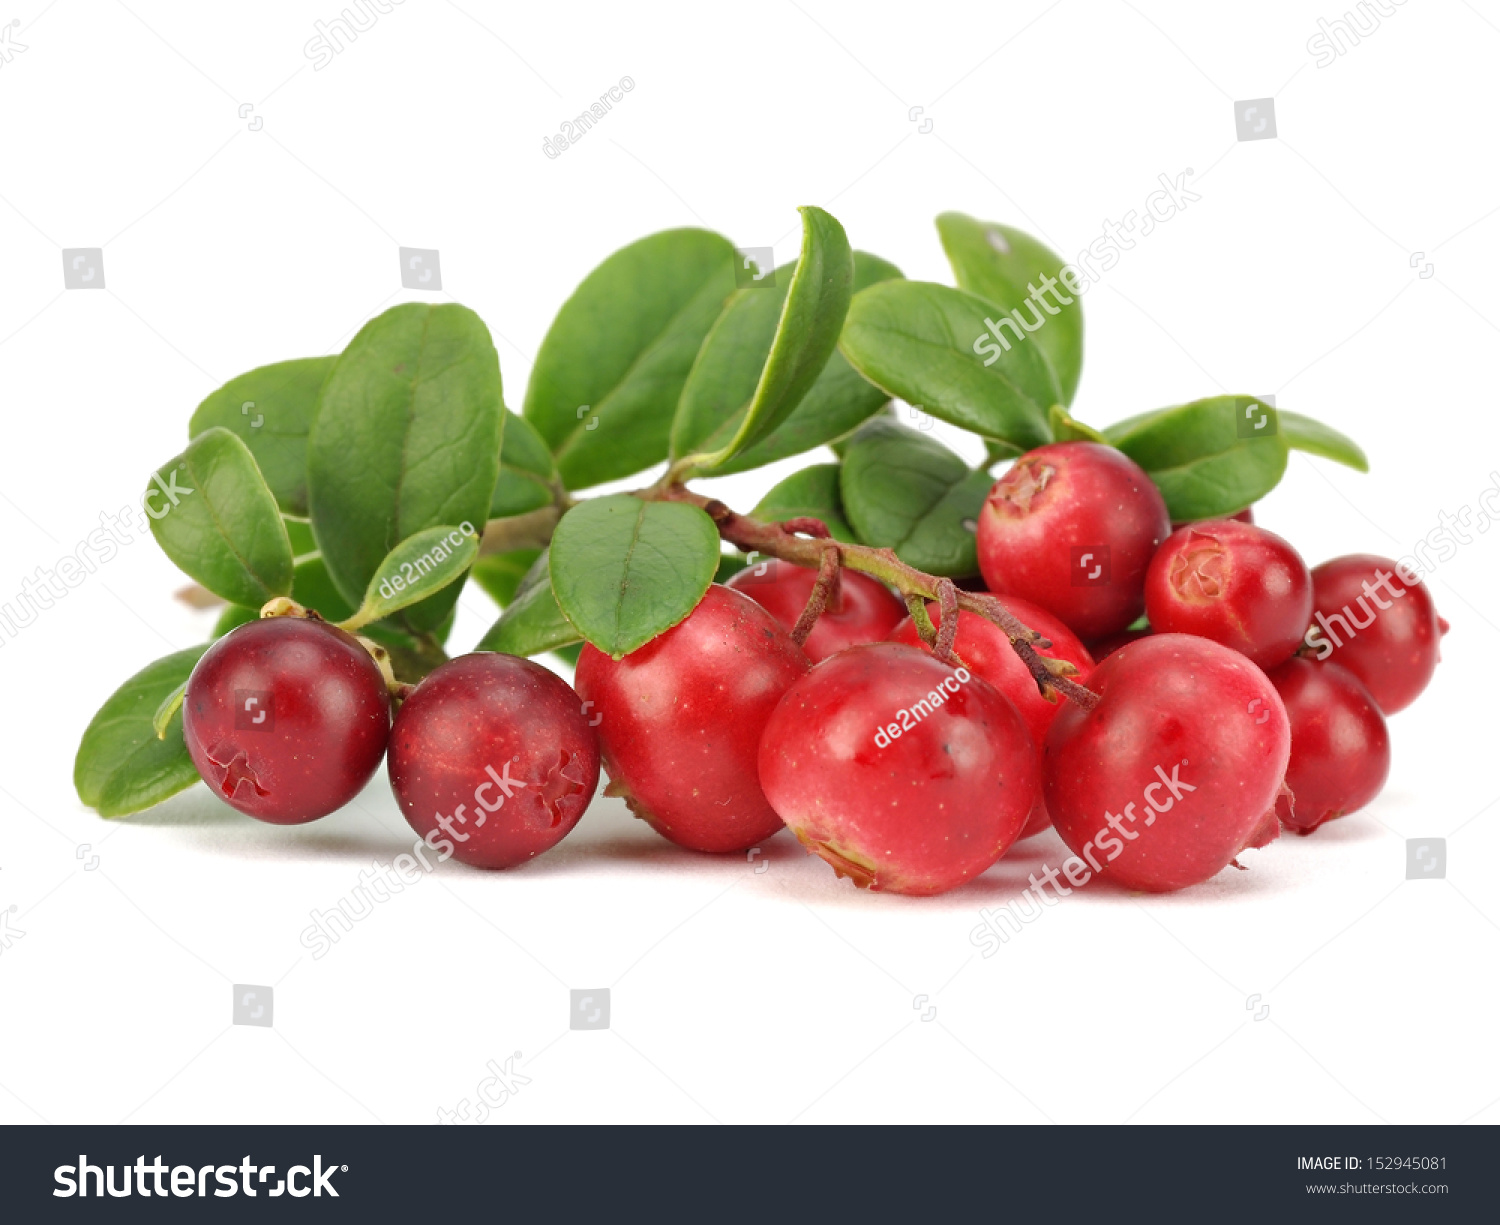 Lingonberry leaves: application in traditional medicine 91